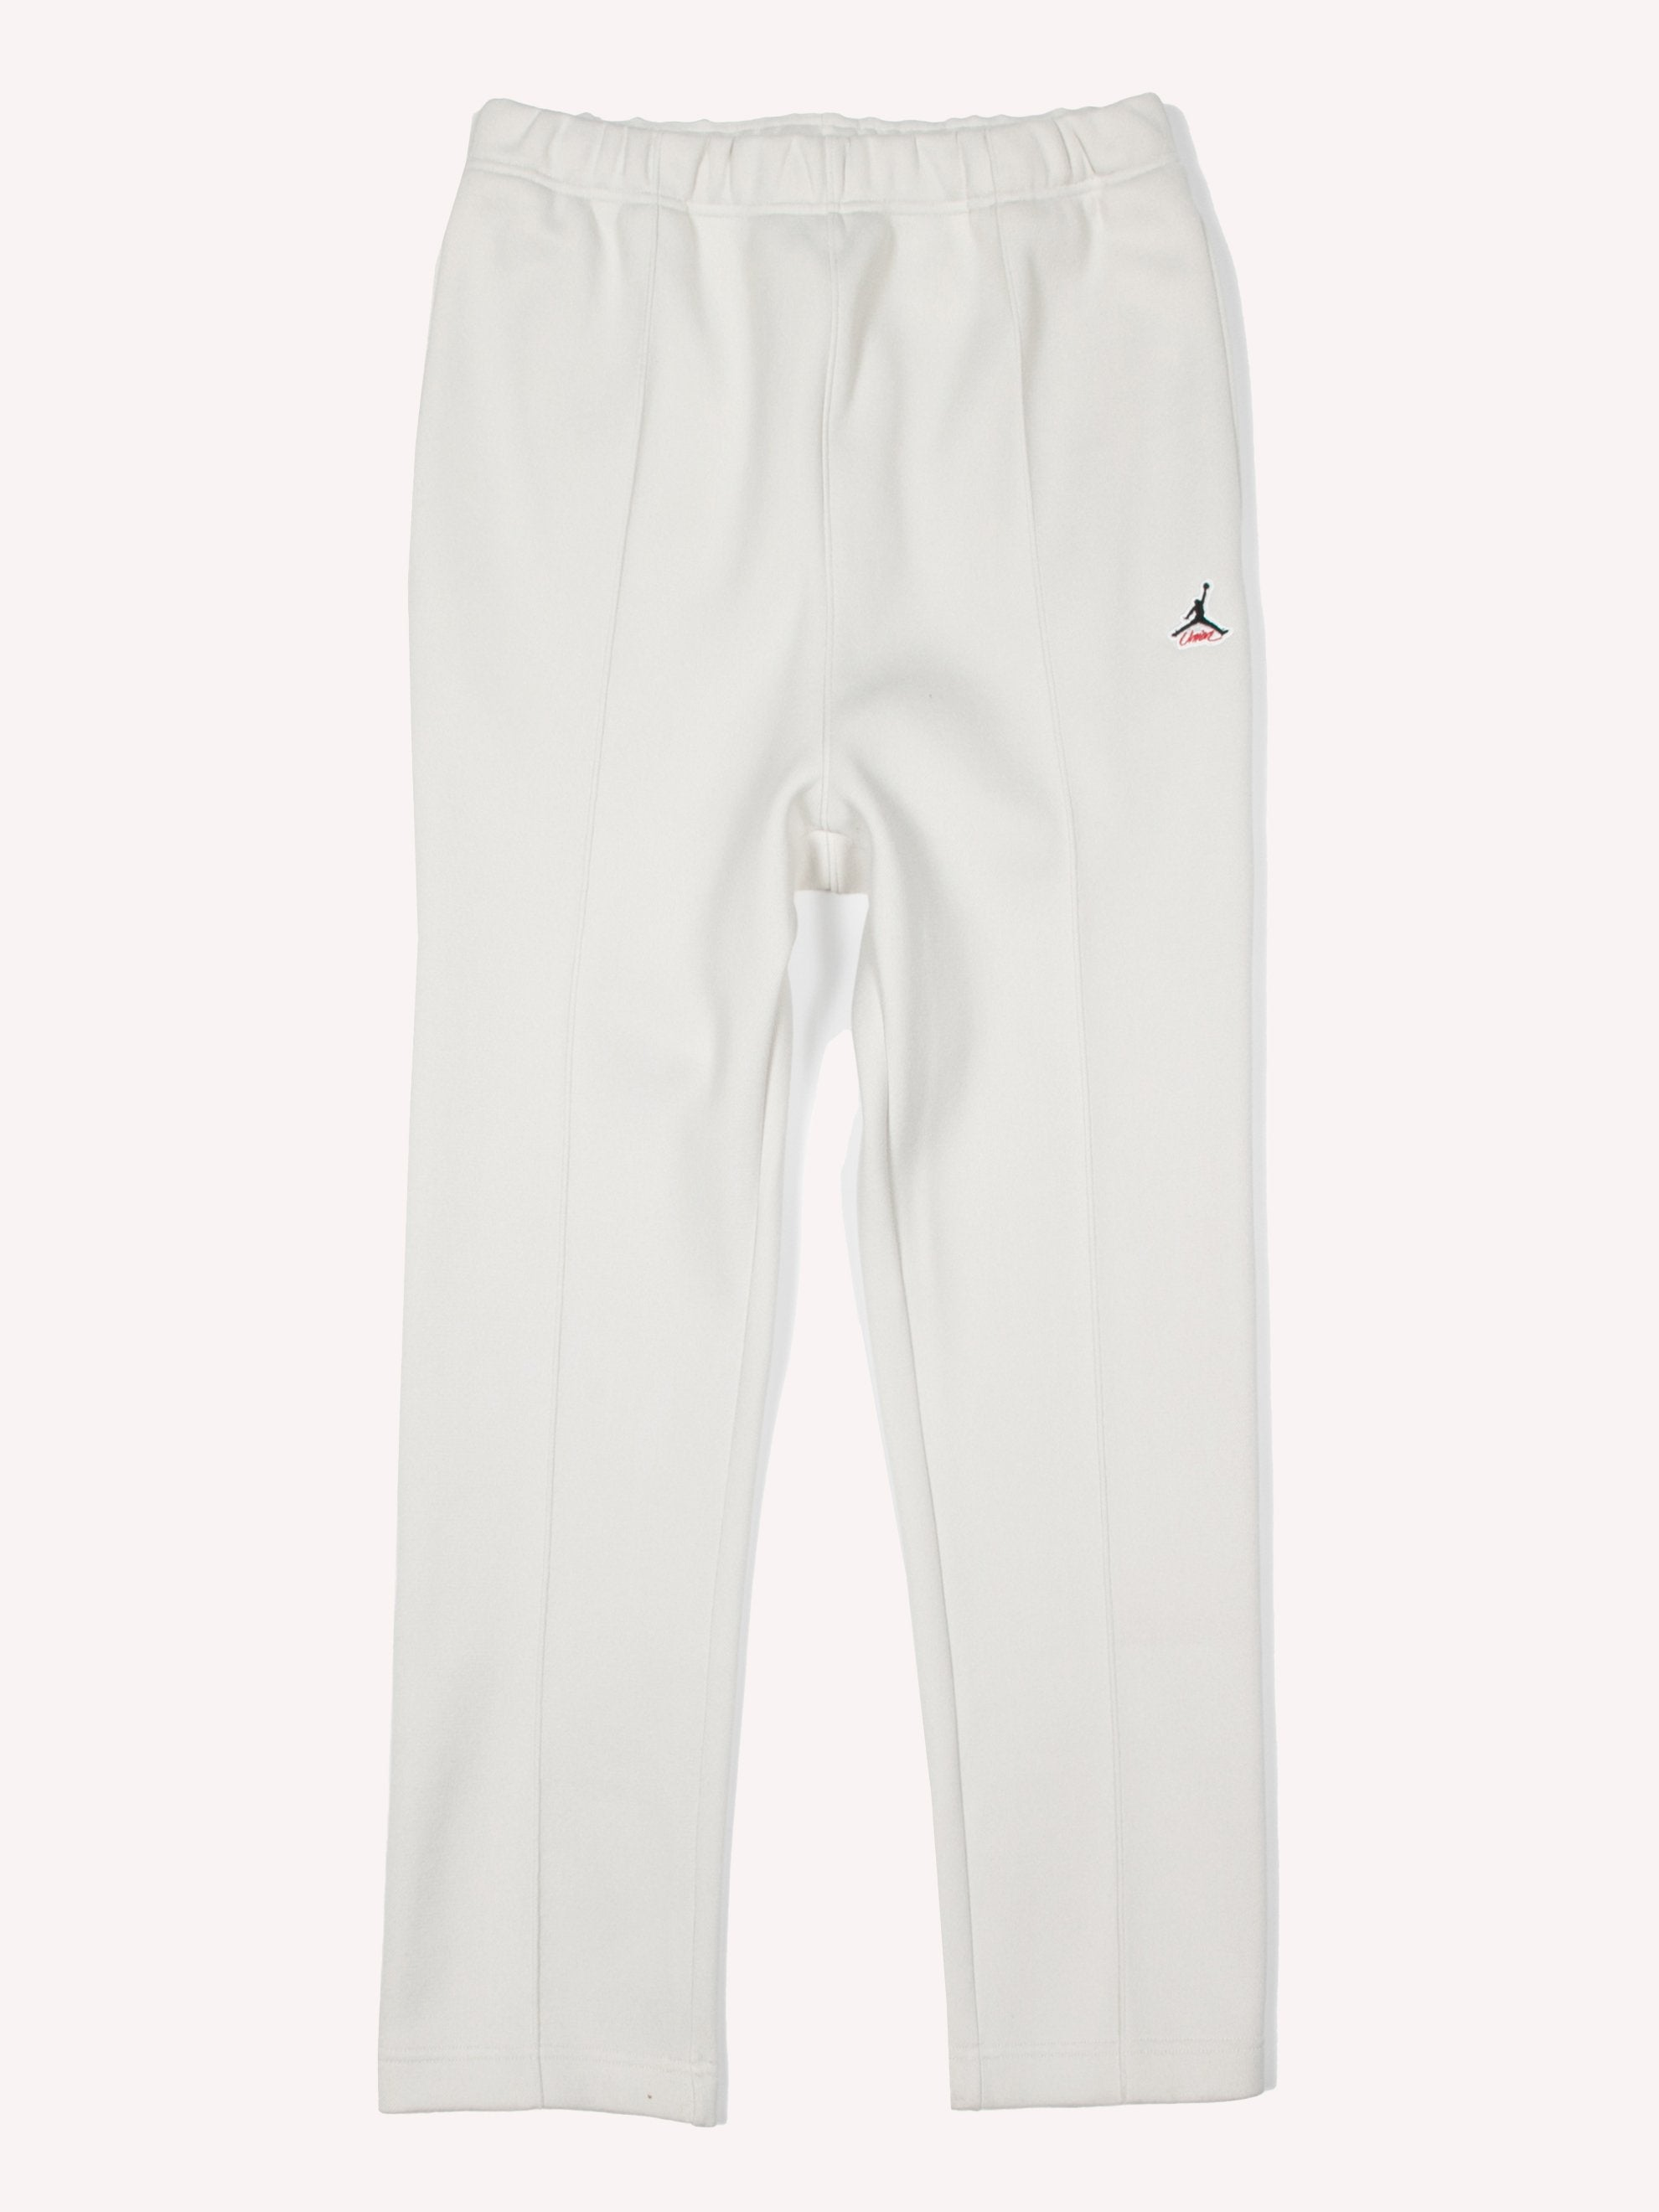 Bone Leisure Trouser 1